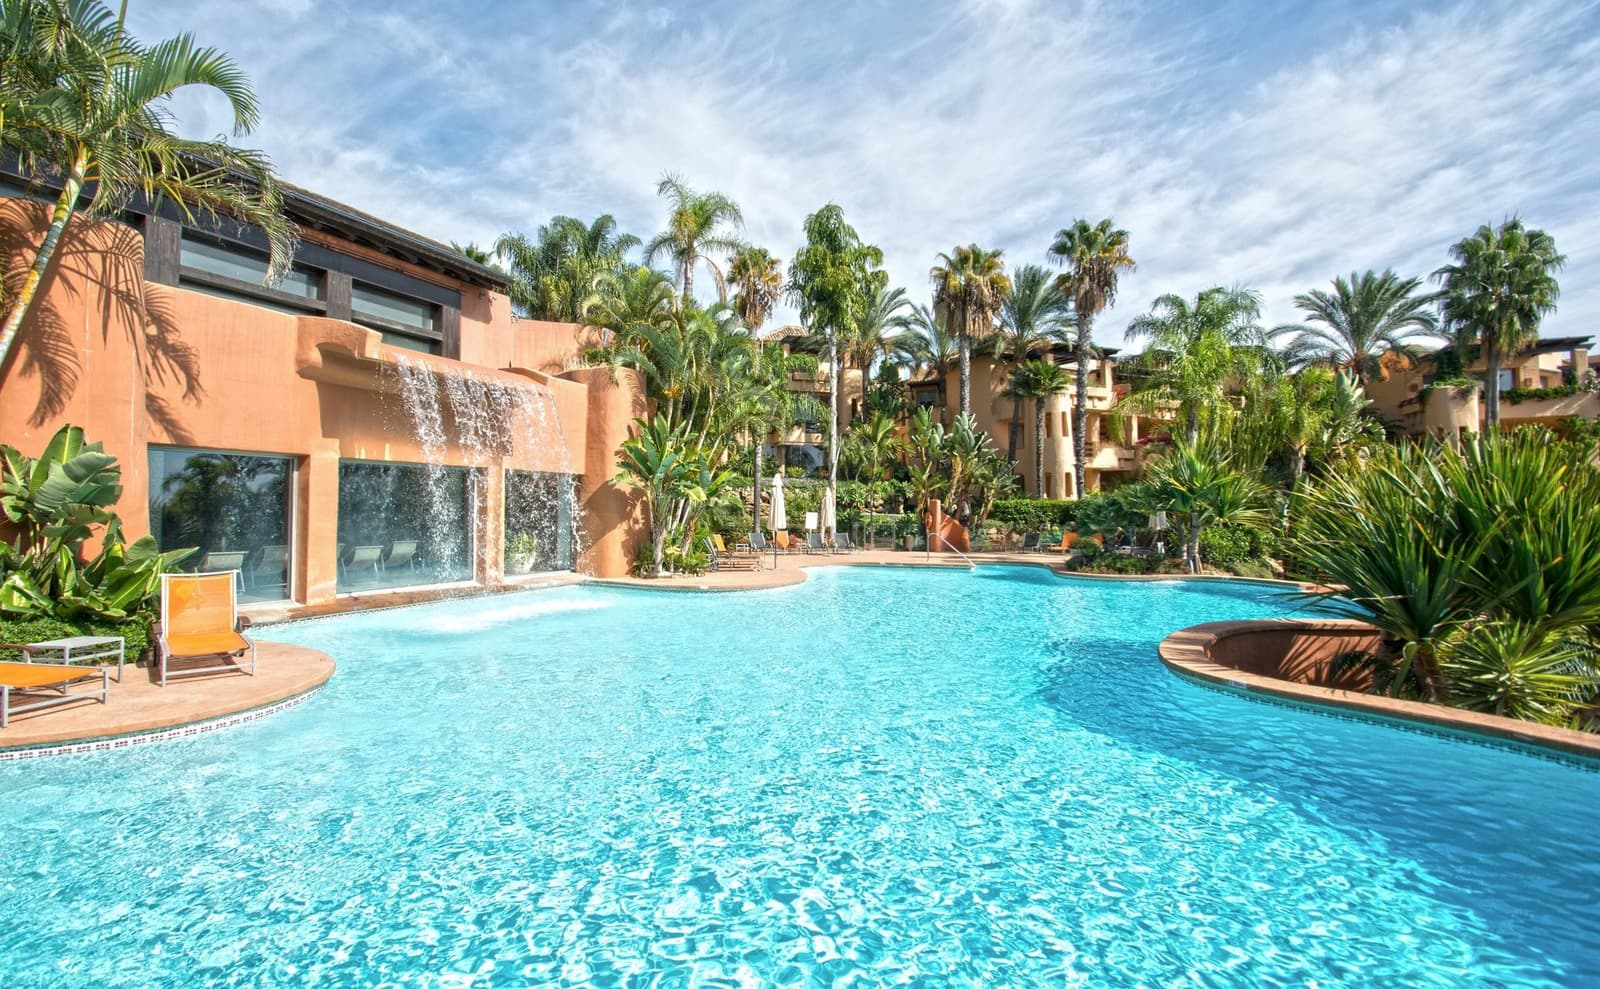 2 bedroom Apartment for sale in Marbella with pool garage - € 750,000 (Ref: 4851327)